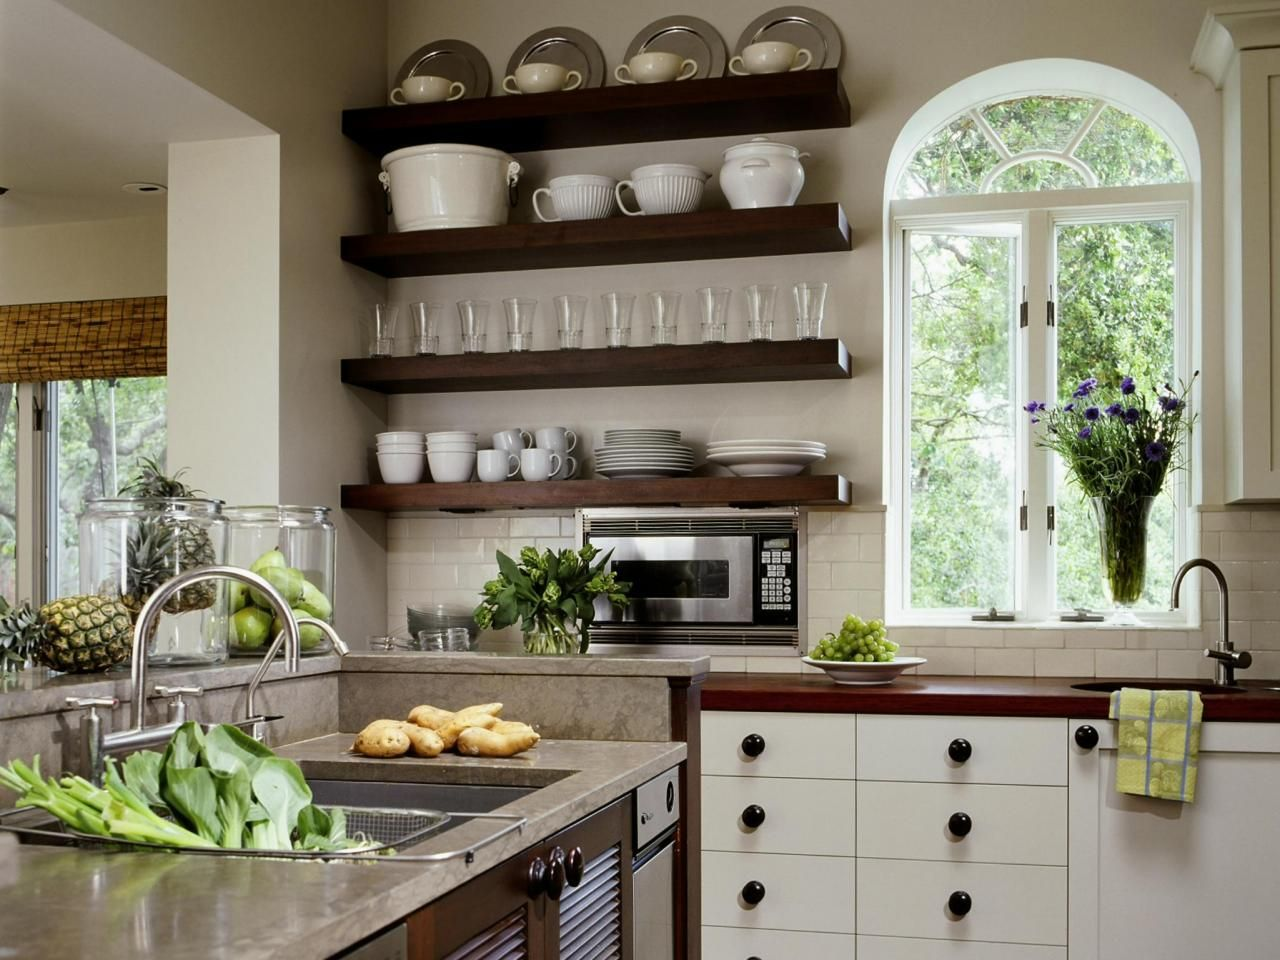 kitchens country kitchen spanish style kitchens open shelving shelving